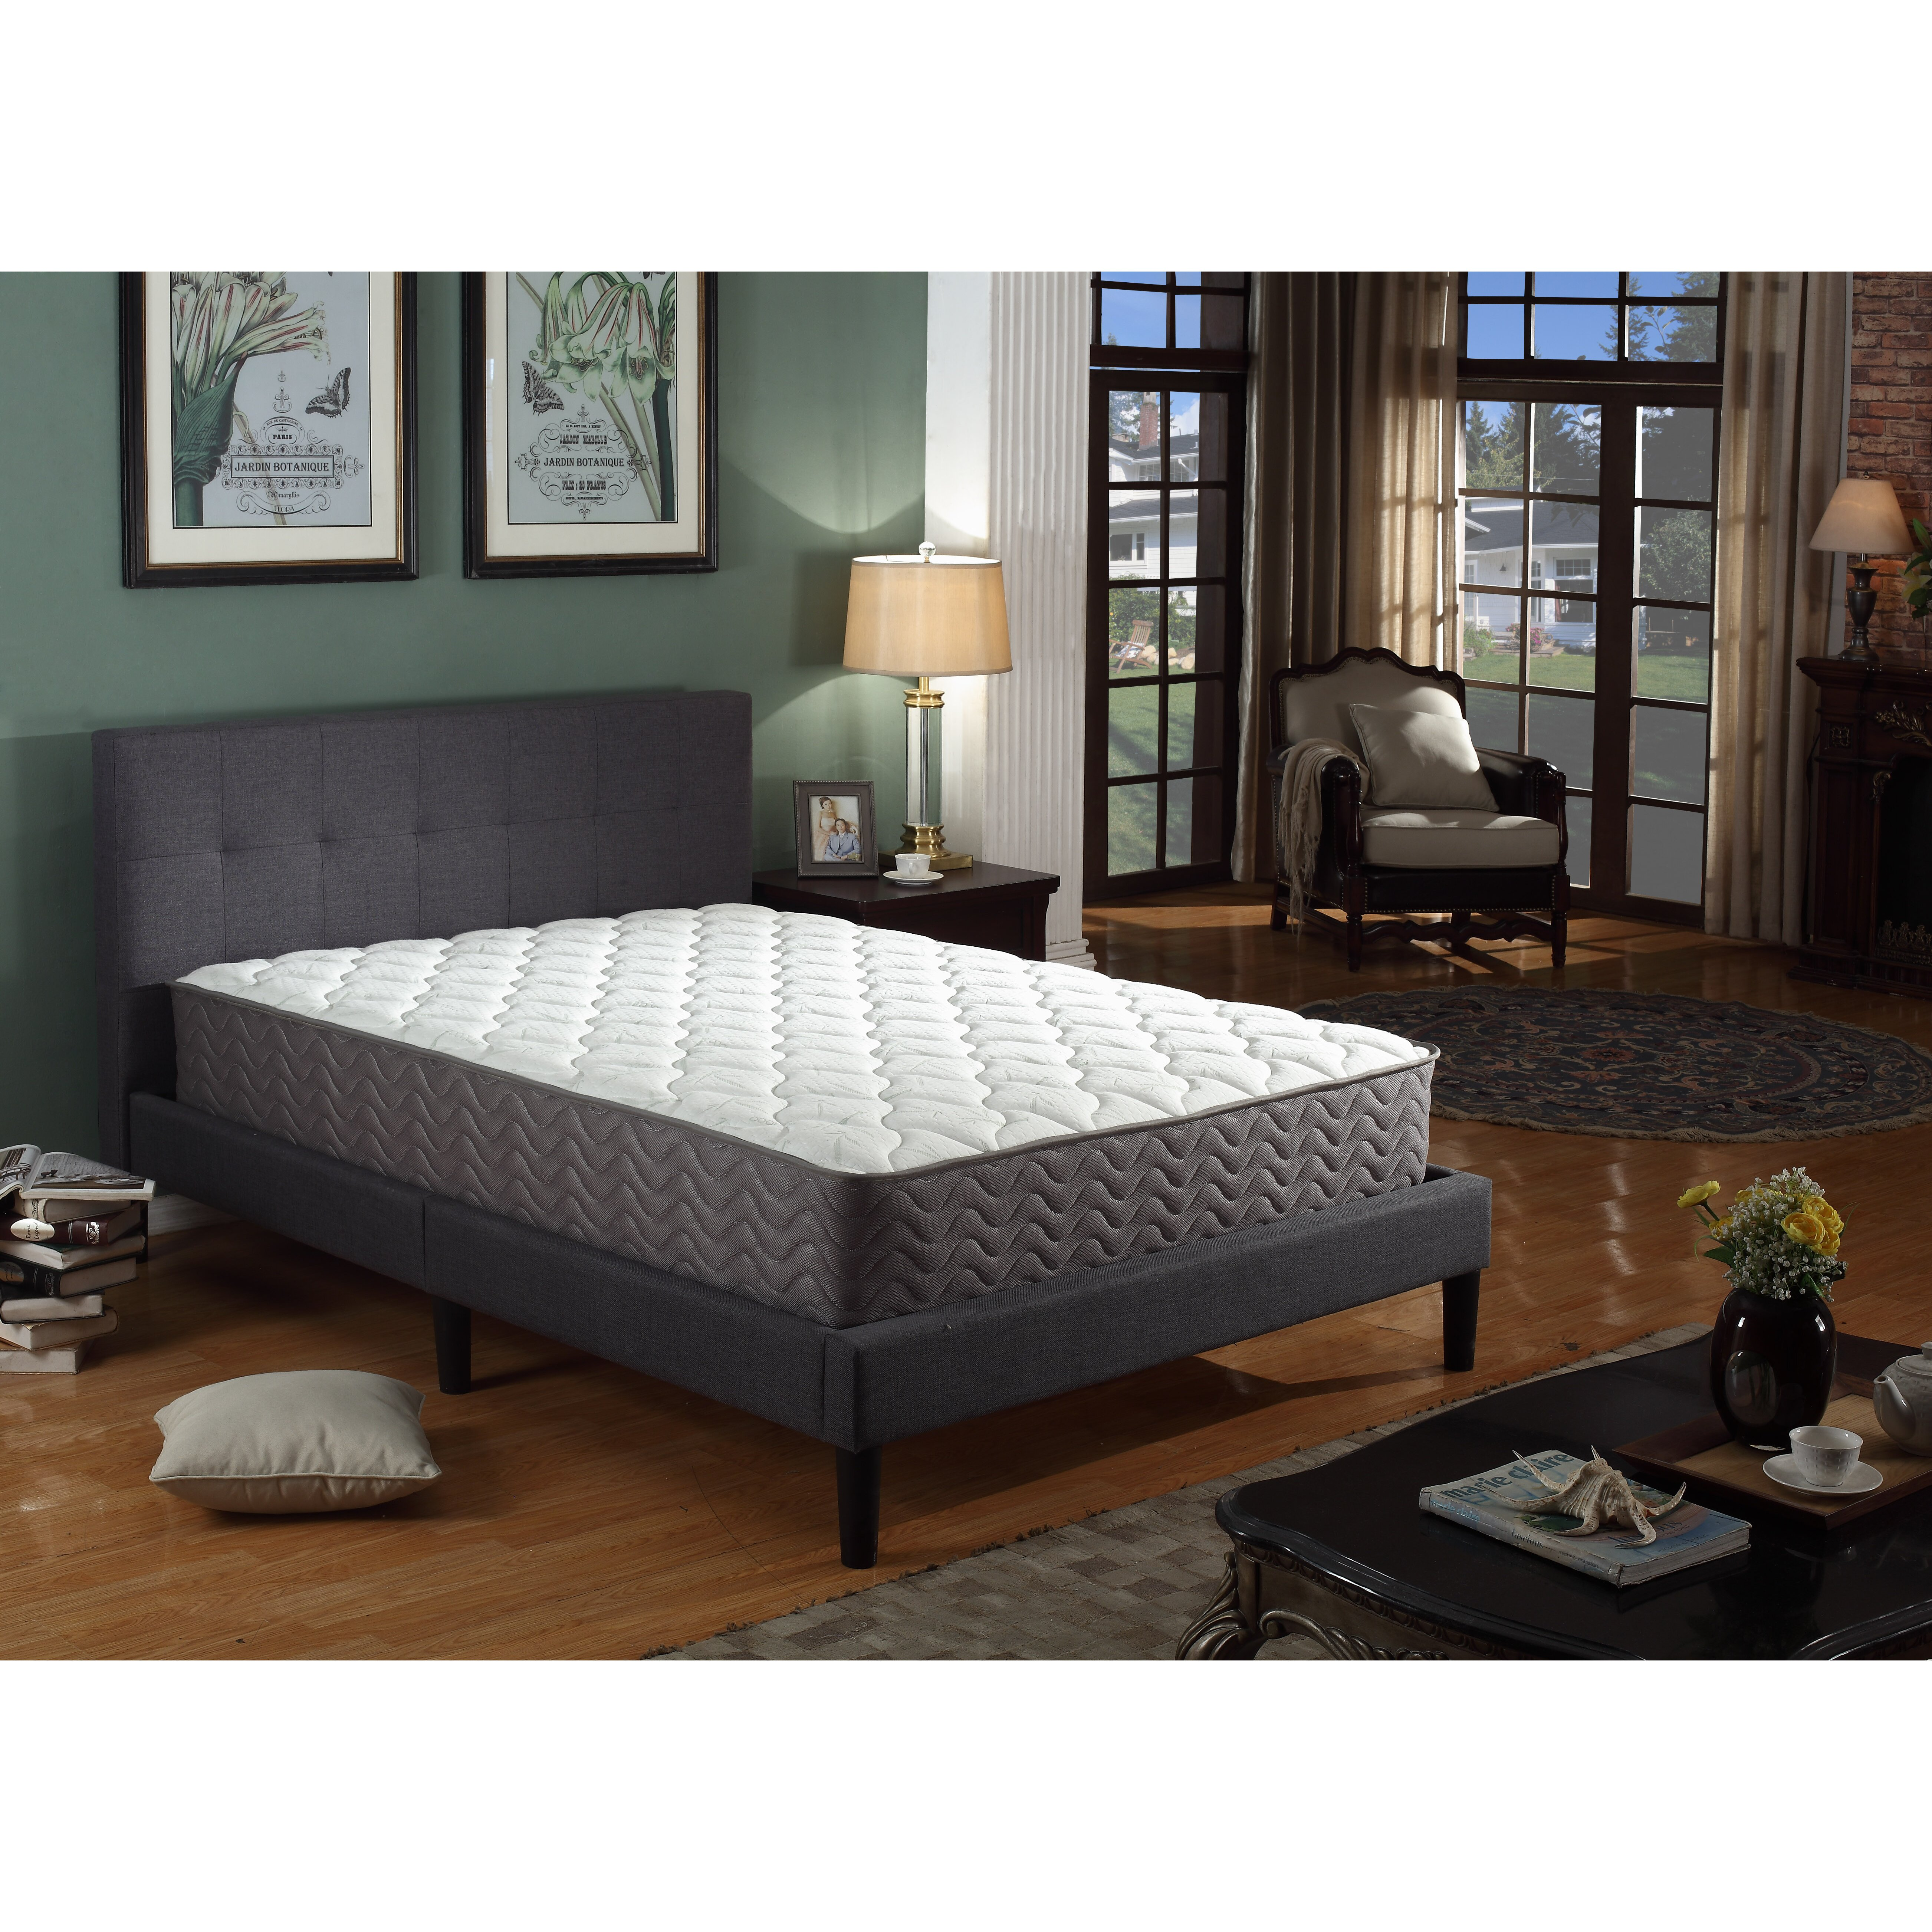 """1085 Best Images About Bedroom Furniture On Pinterest: Madison Home USA 12"""" Firm Mattress & Reviews"""